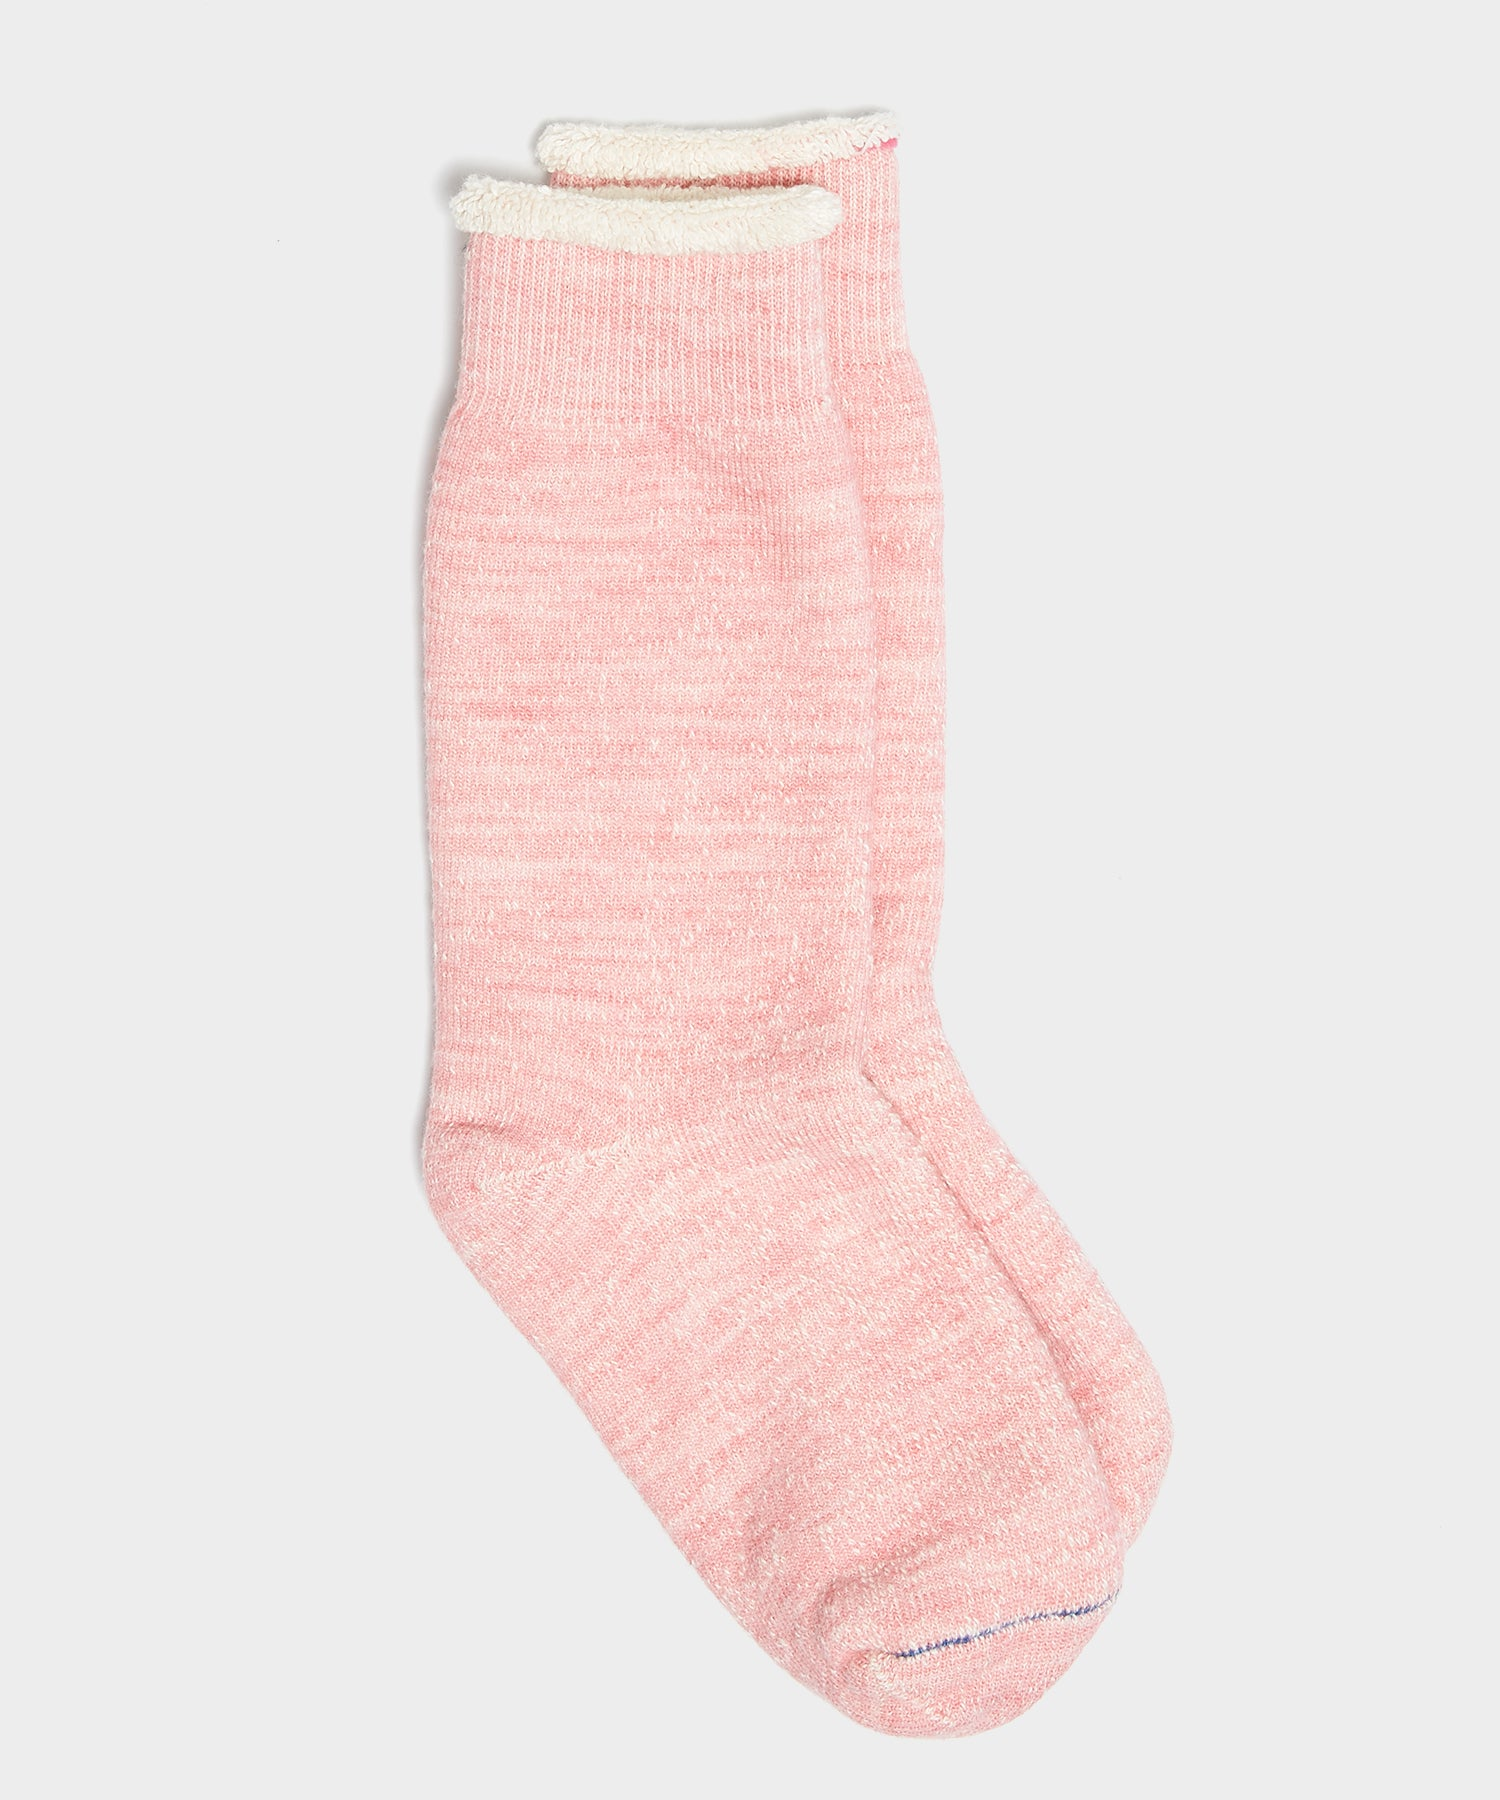 RoToTo Double Face Socks in Light Pink